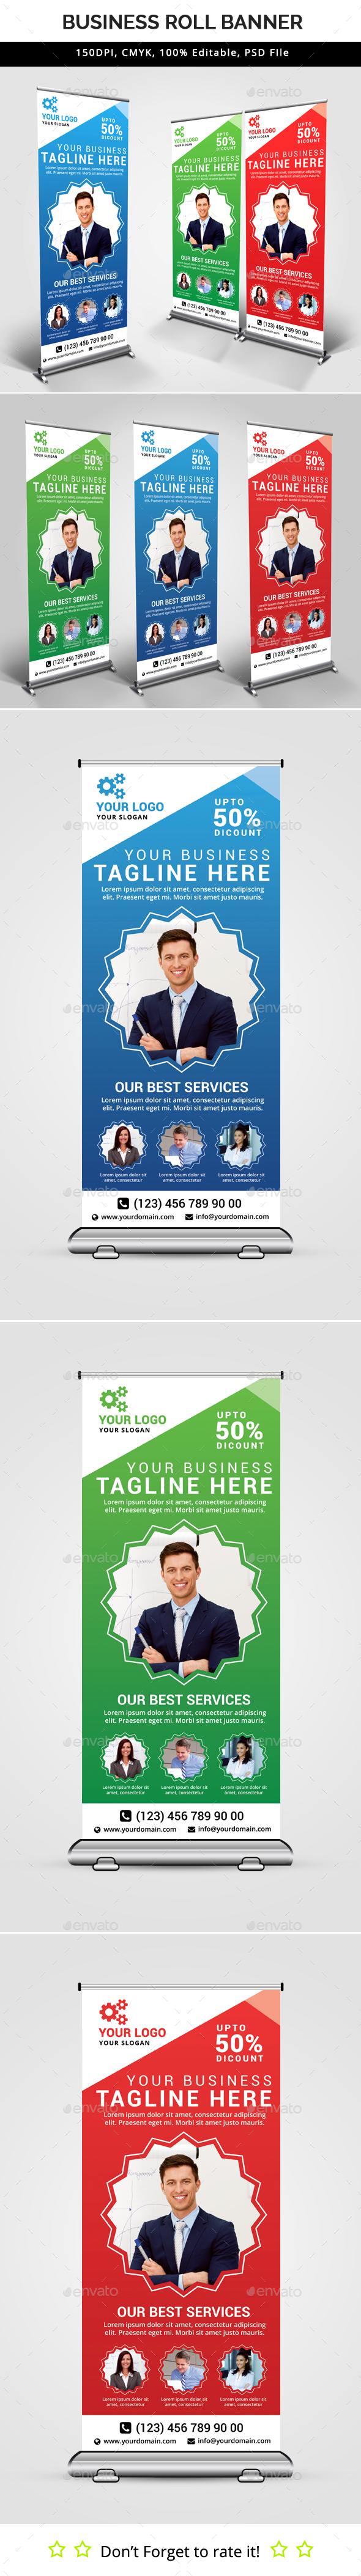 Business Roll Up Banner V29 - Signage Print Templates